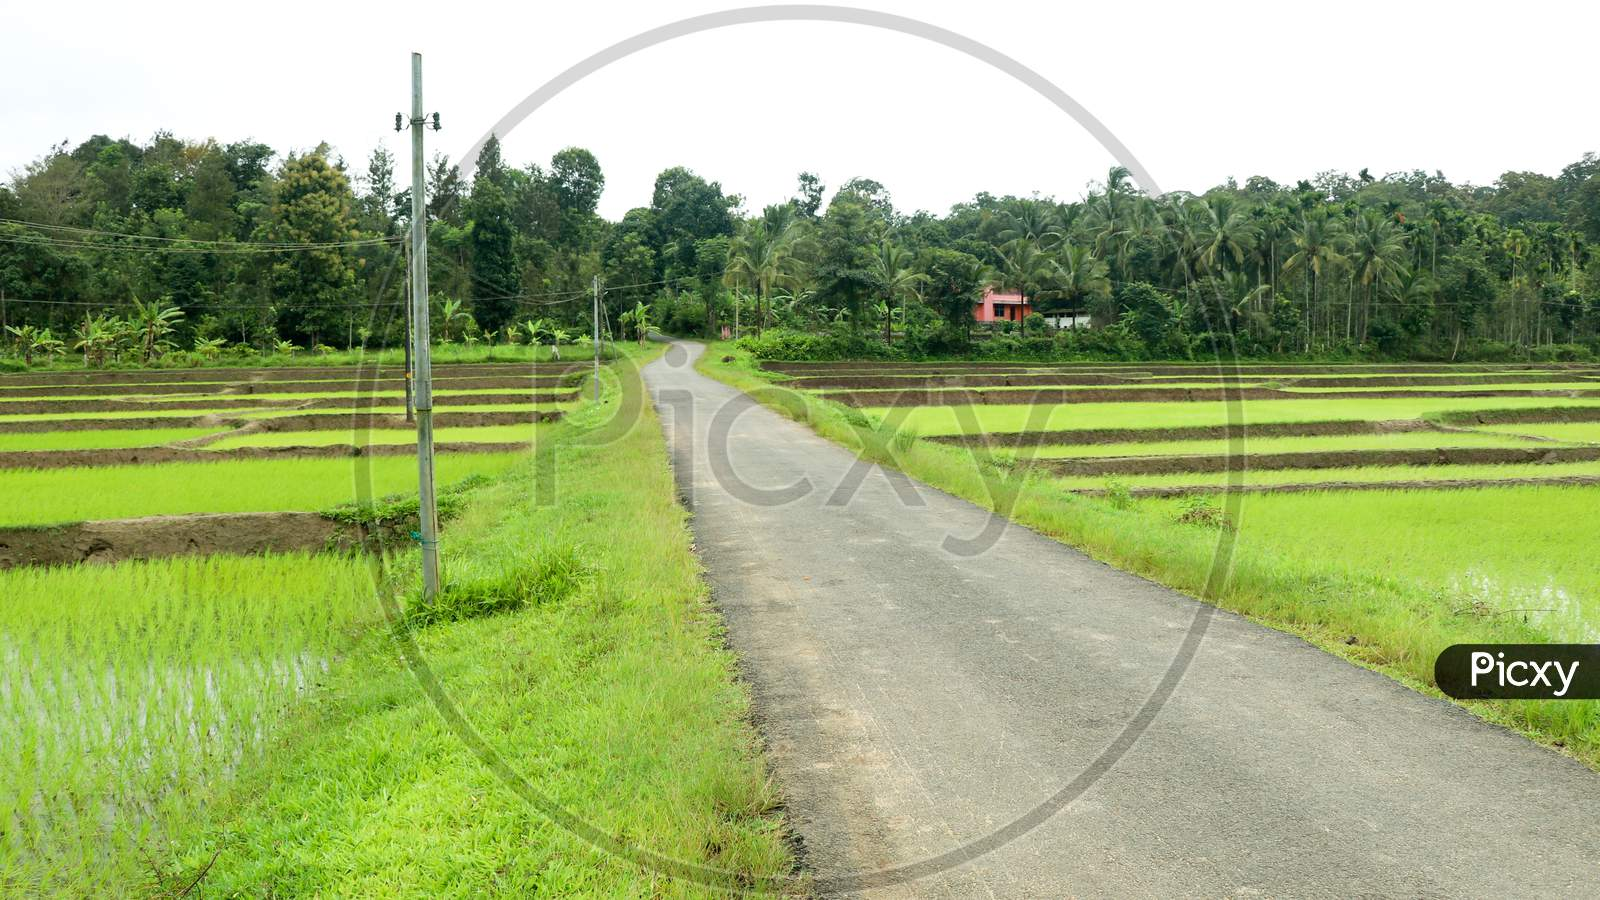 A Village Road Through Newly Planted Paddy Field